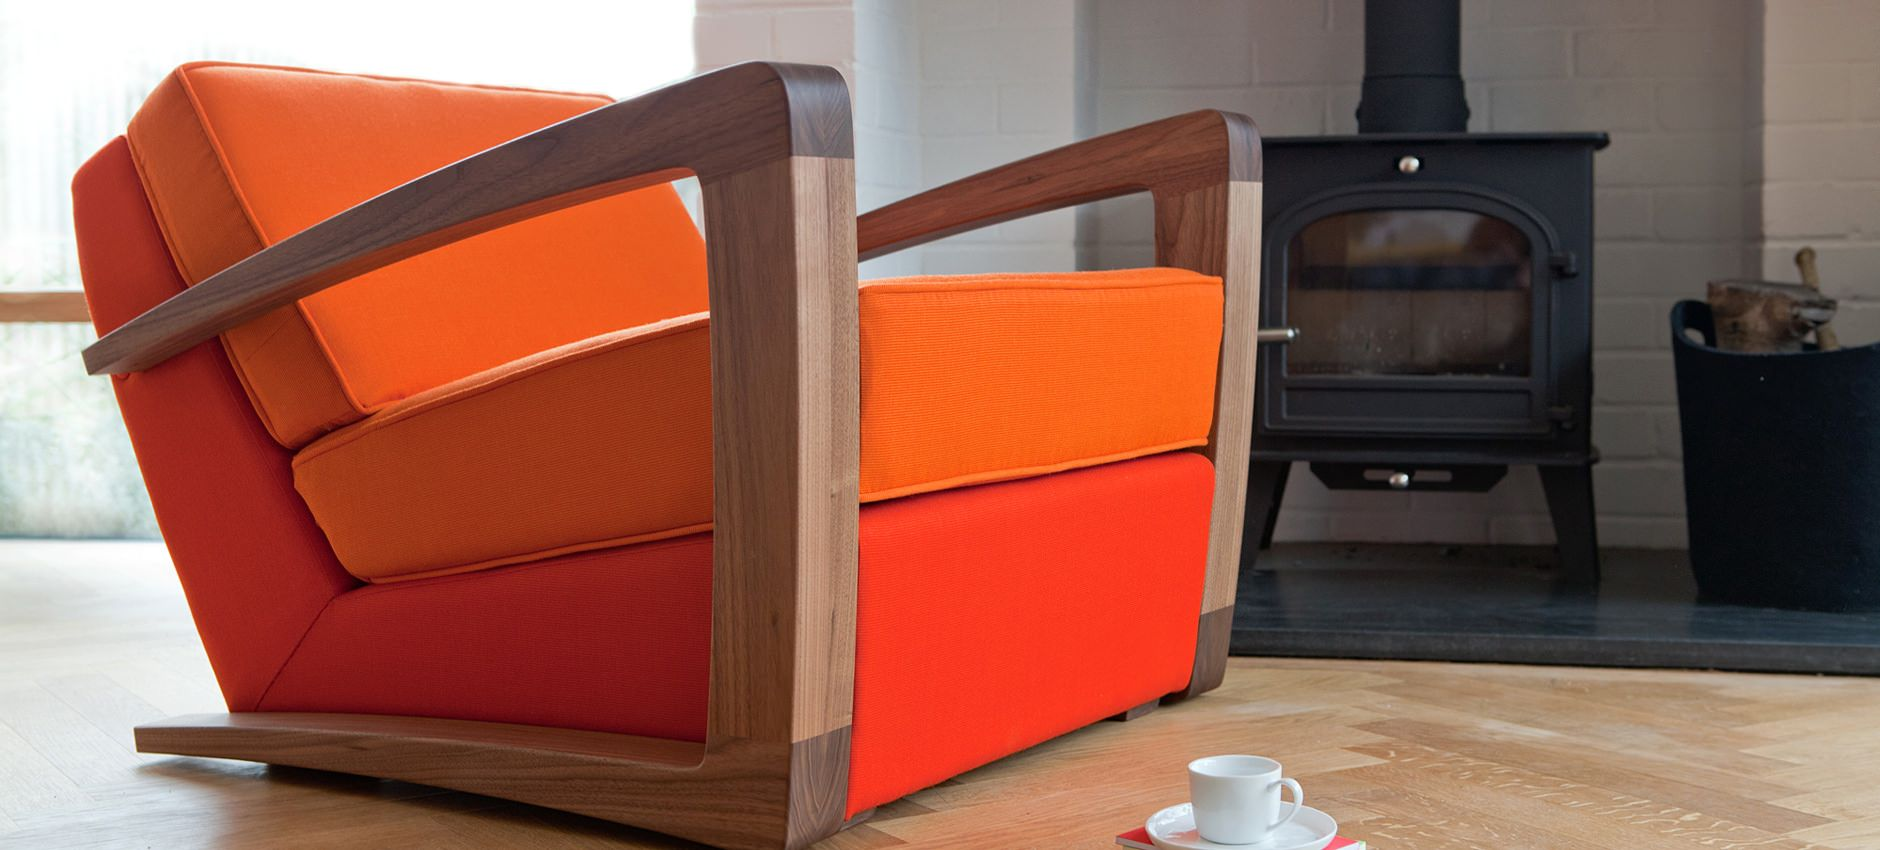 Sillas De Caza Bespoke Furniture Google Search Seat Muebles Sillas